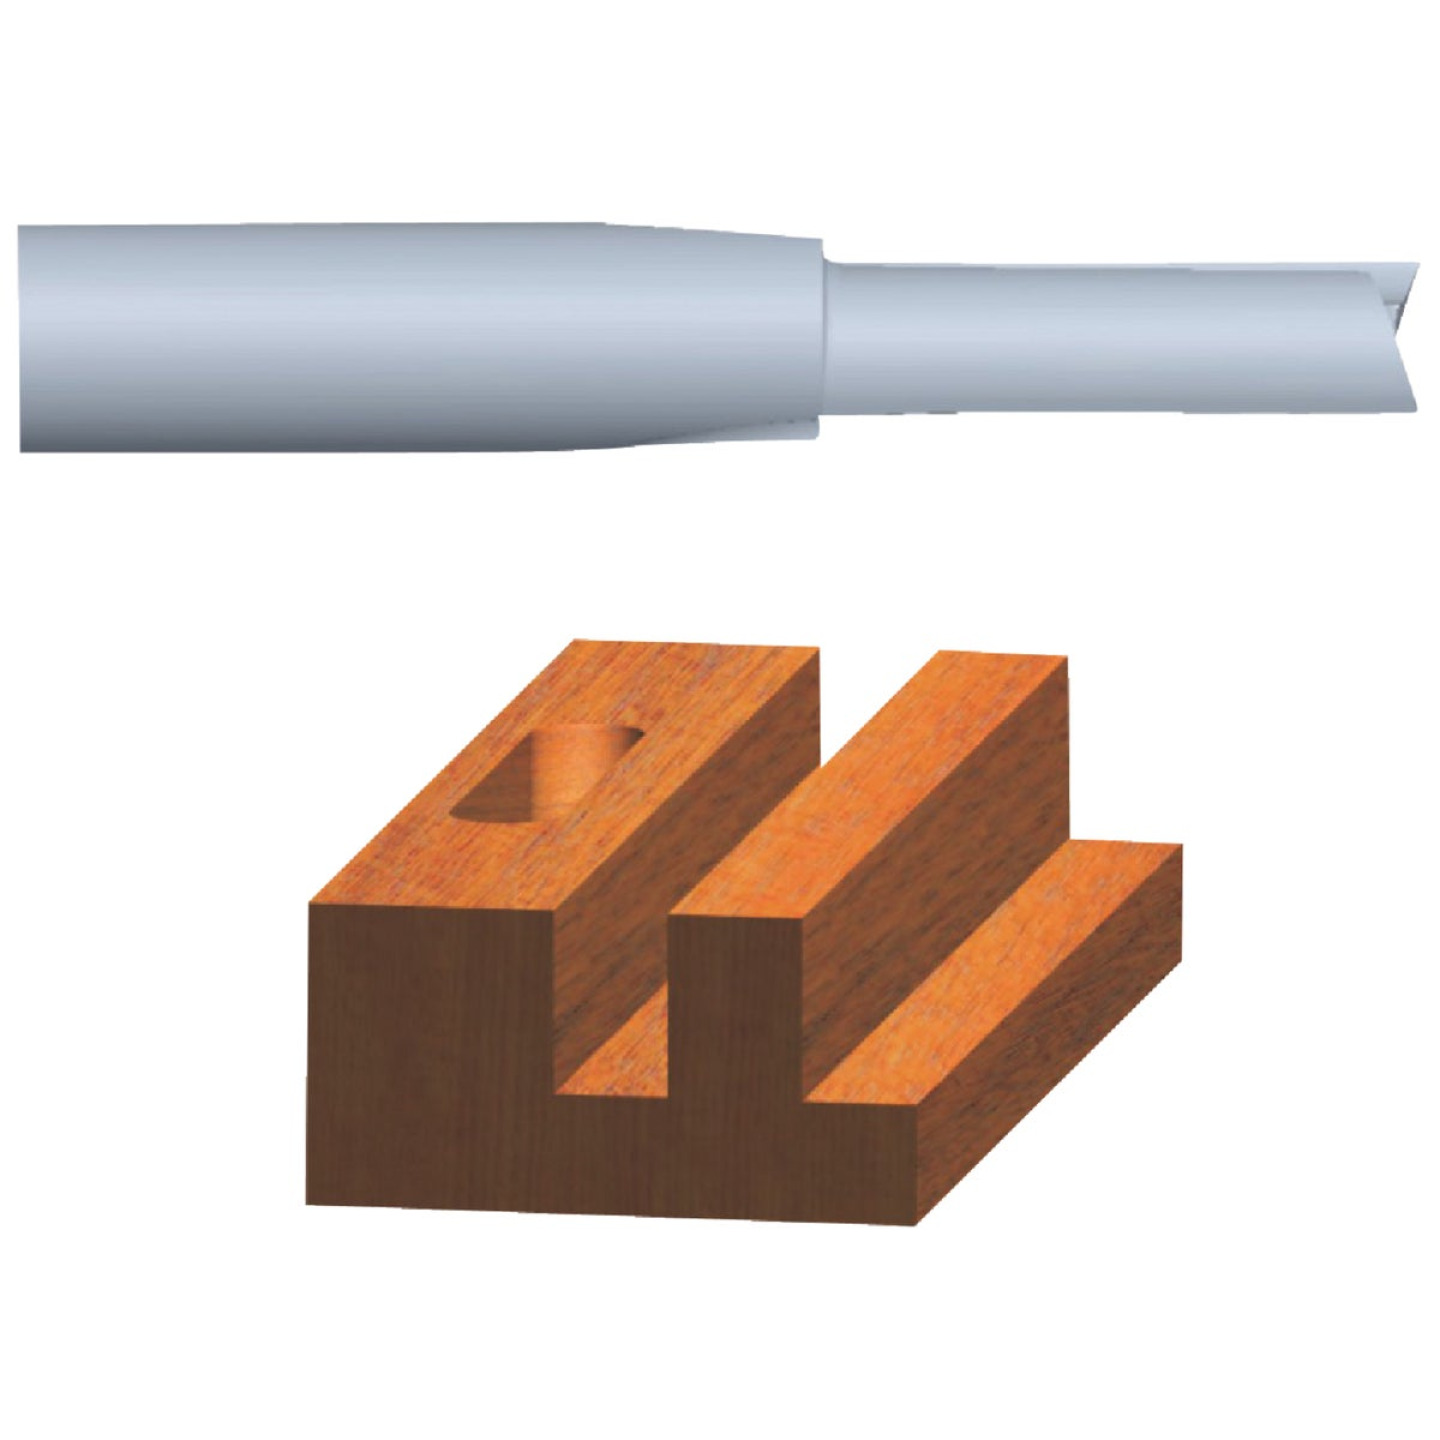 Vermont American Carbide Tip 5/8 In. Straight Bit Image 1